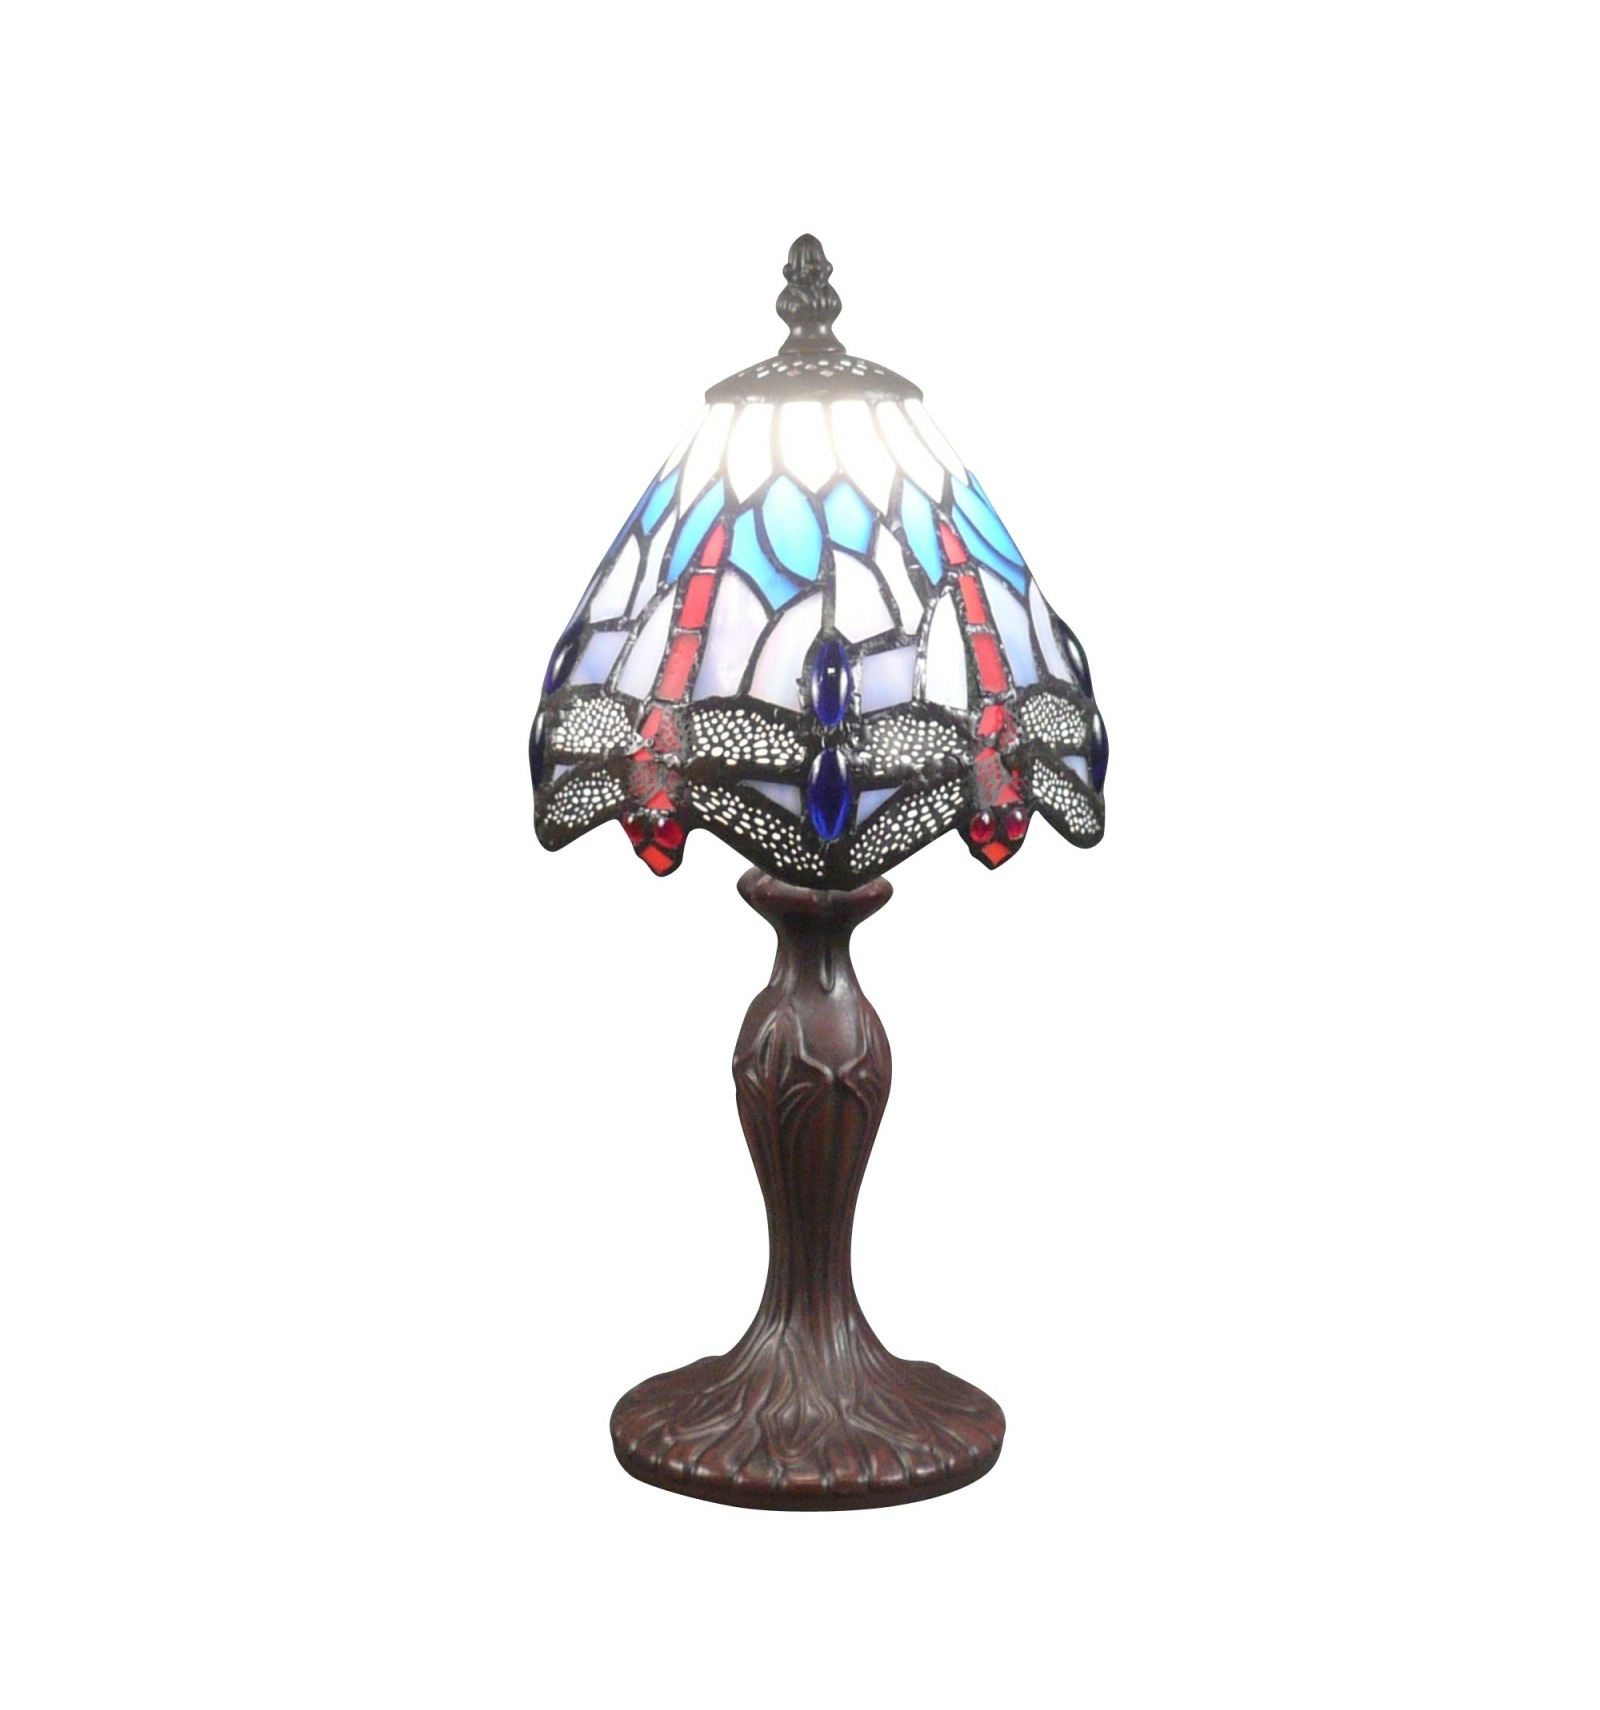 Tiffany Tischlampe Libelle Tiffany Lampe Jugendstil Shop